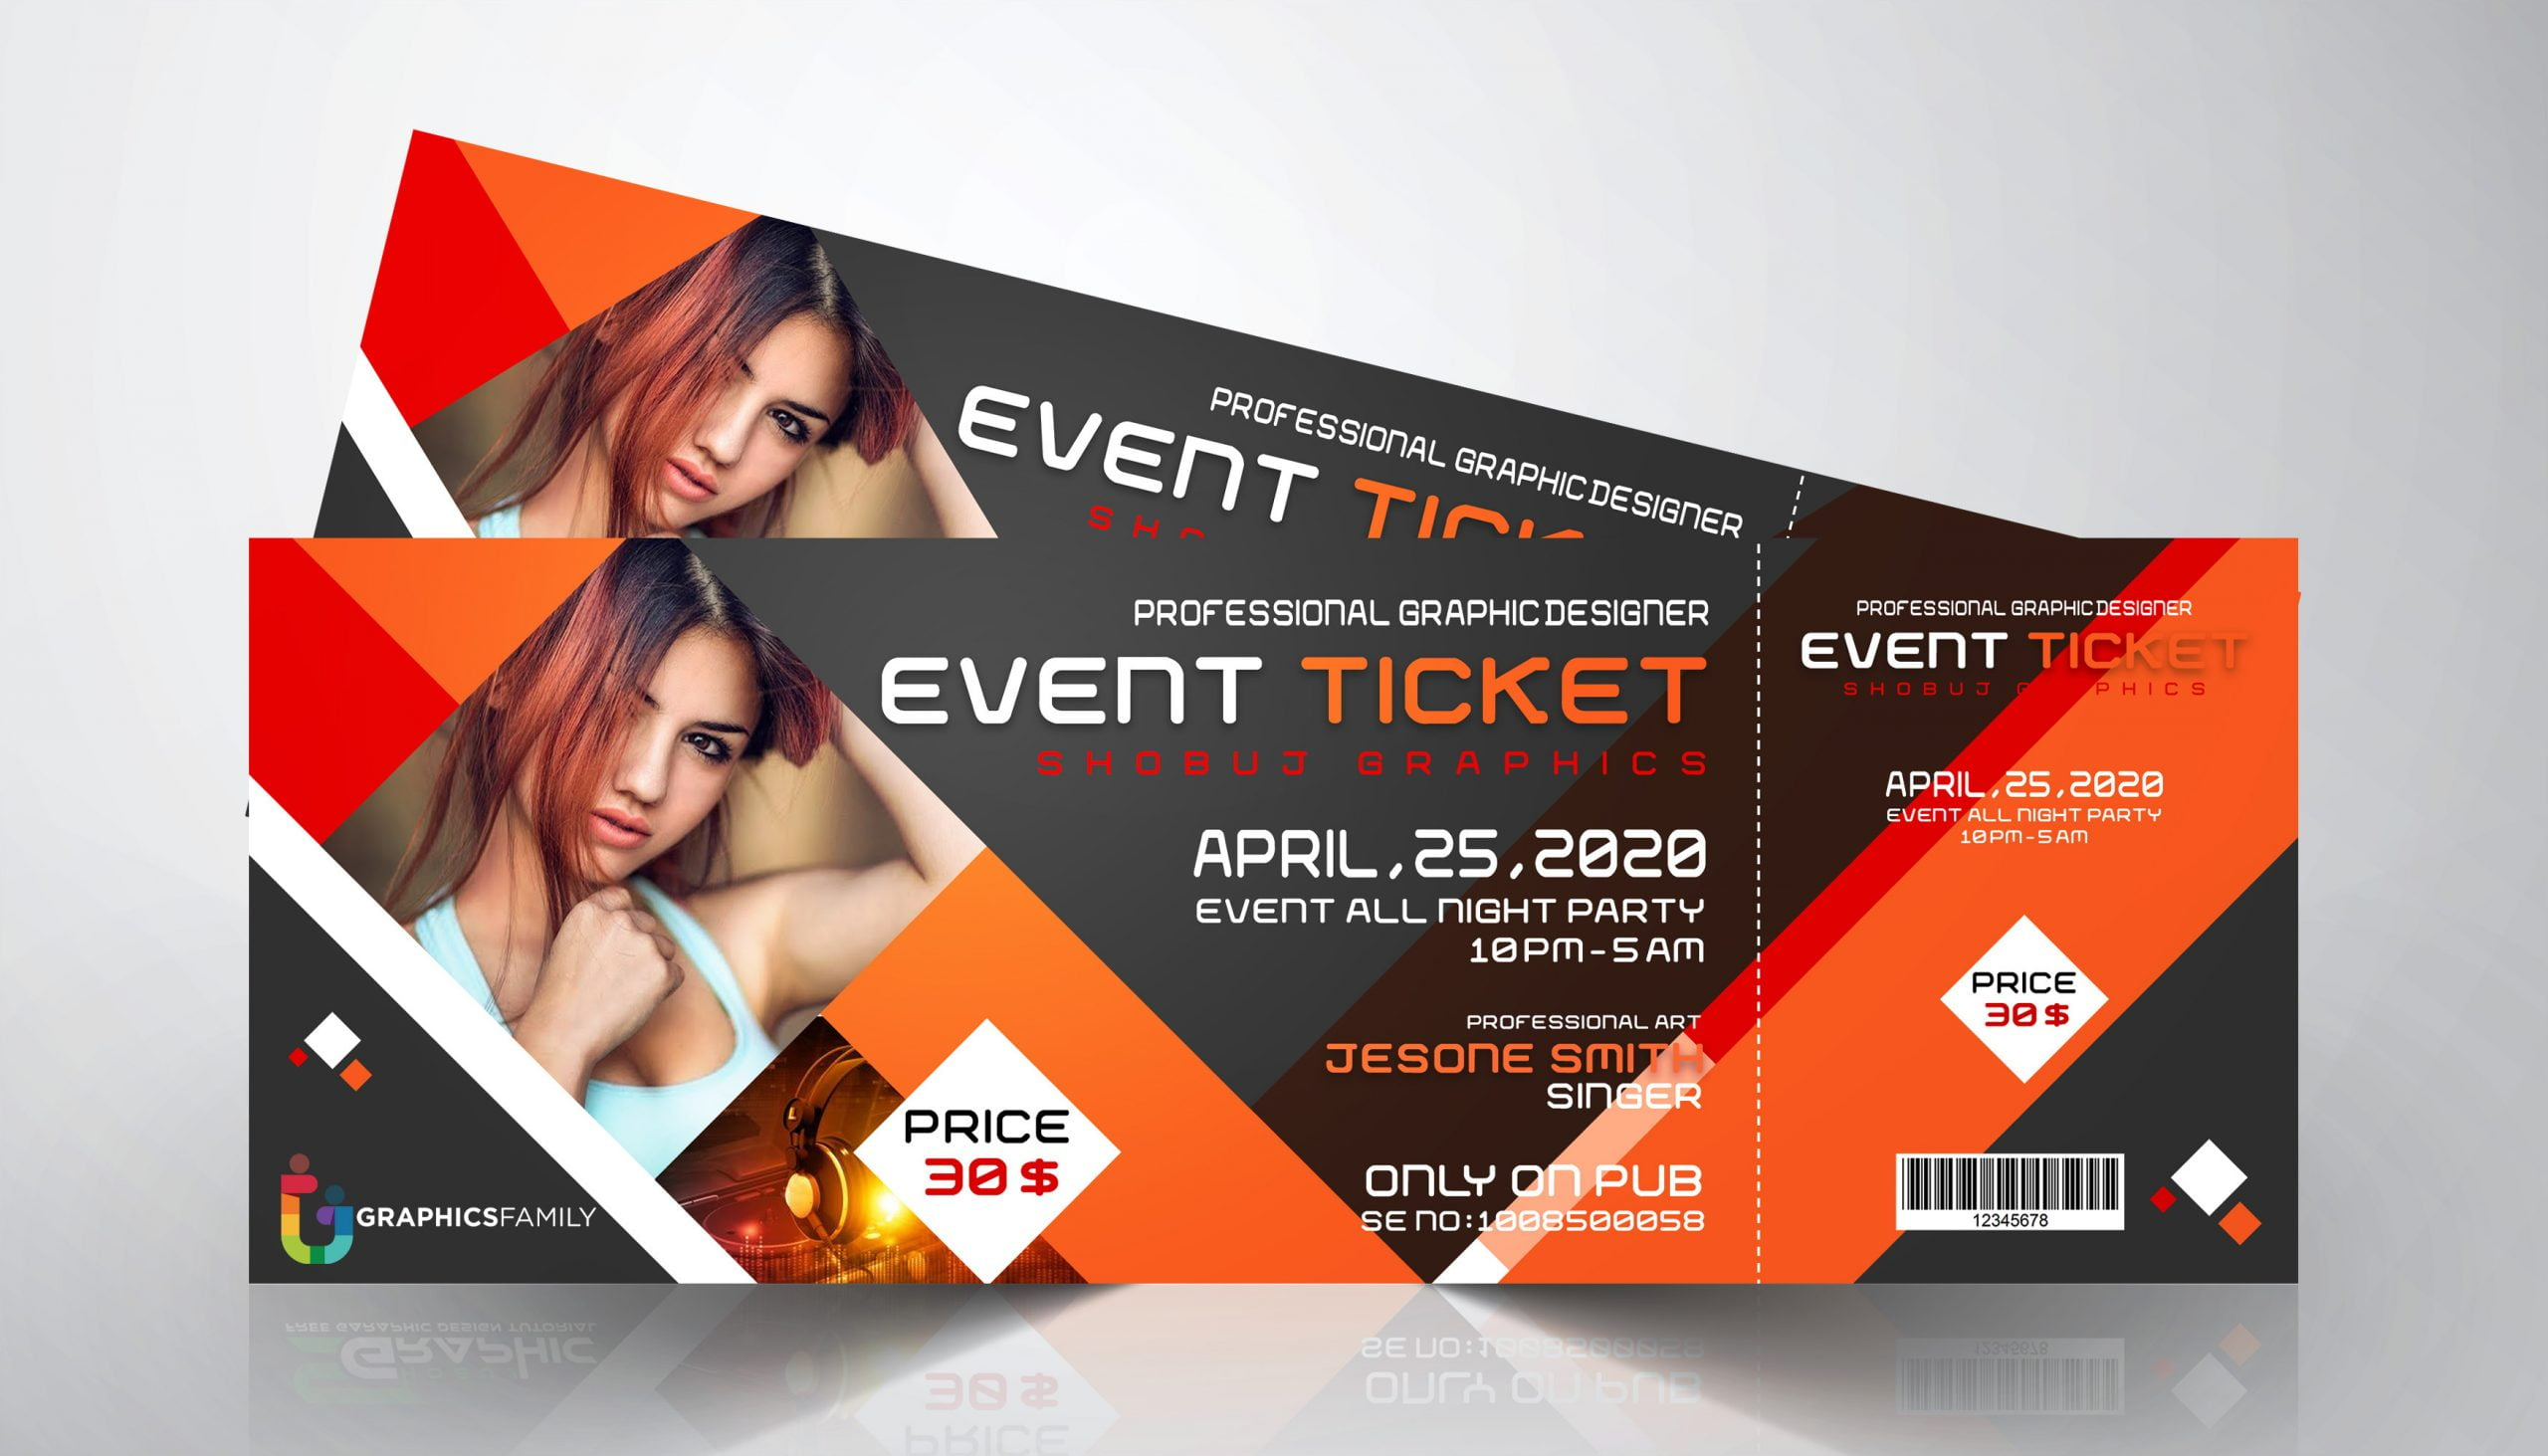 Night Club Event Ticket Design Free Psd Graphicsfamily